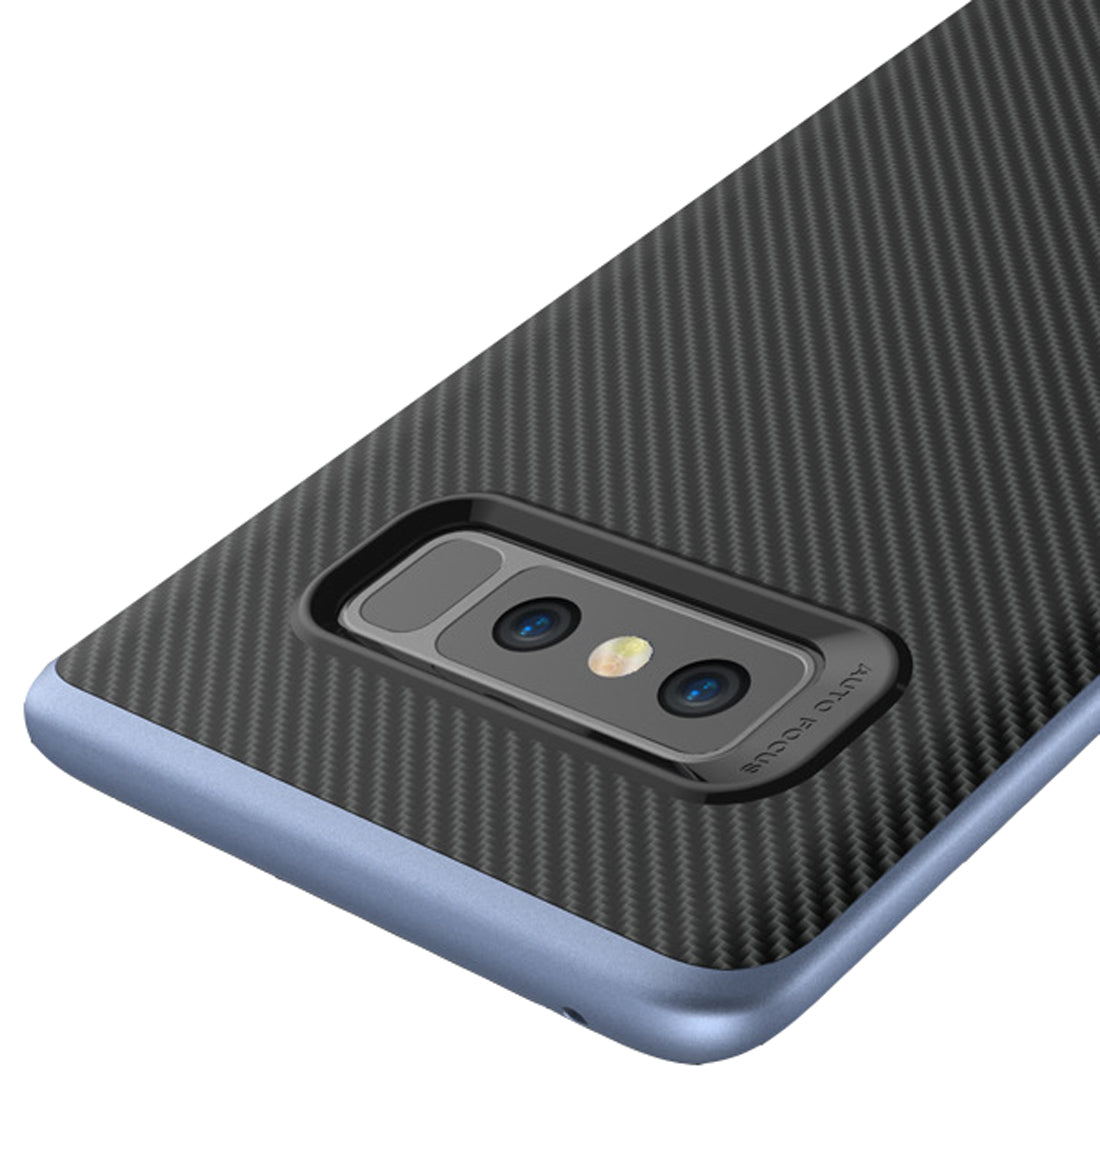 Hornet-II Ultra Thin Carbon Finish Shockproof Back + Bumper Case Cover for Samsung Galaxy Note 8 - Grey - Mobizang